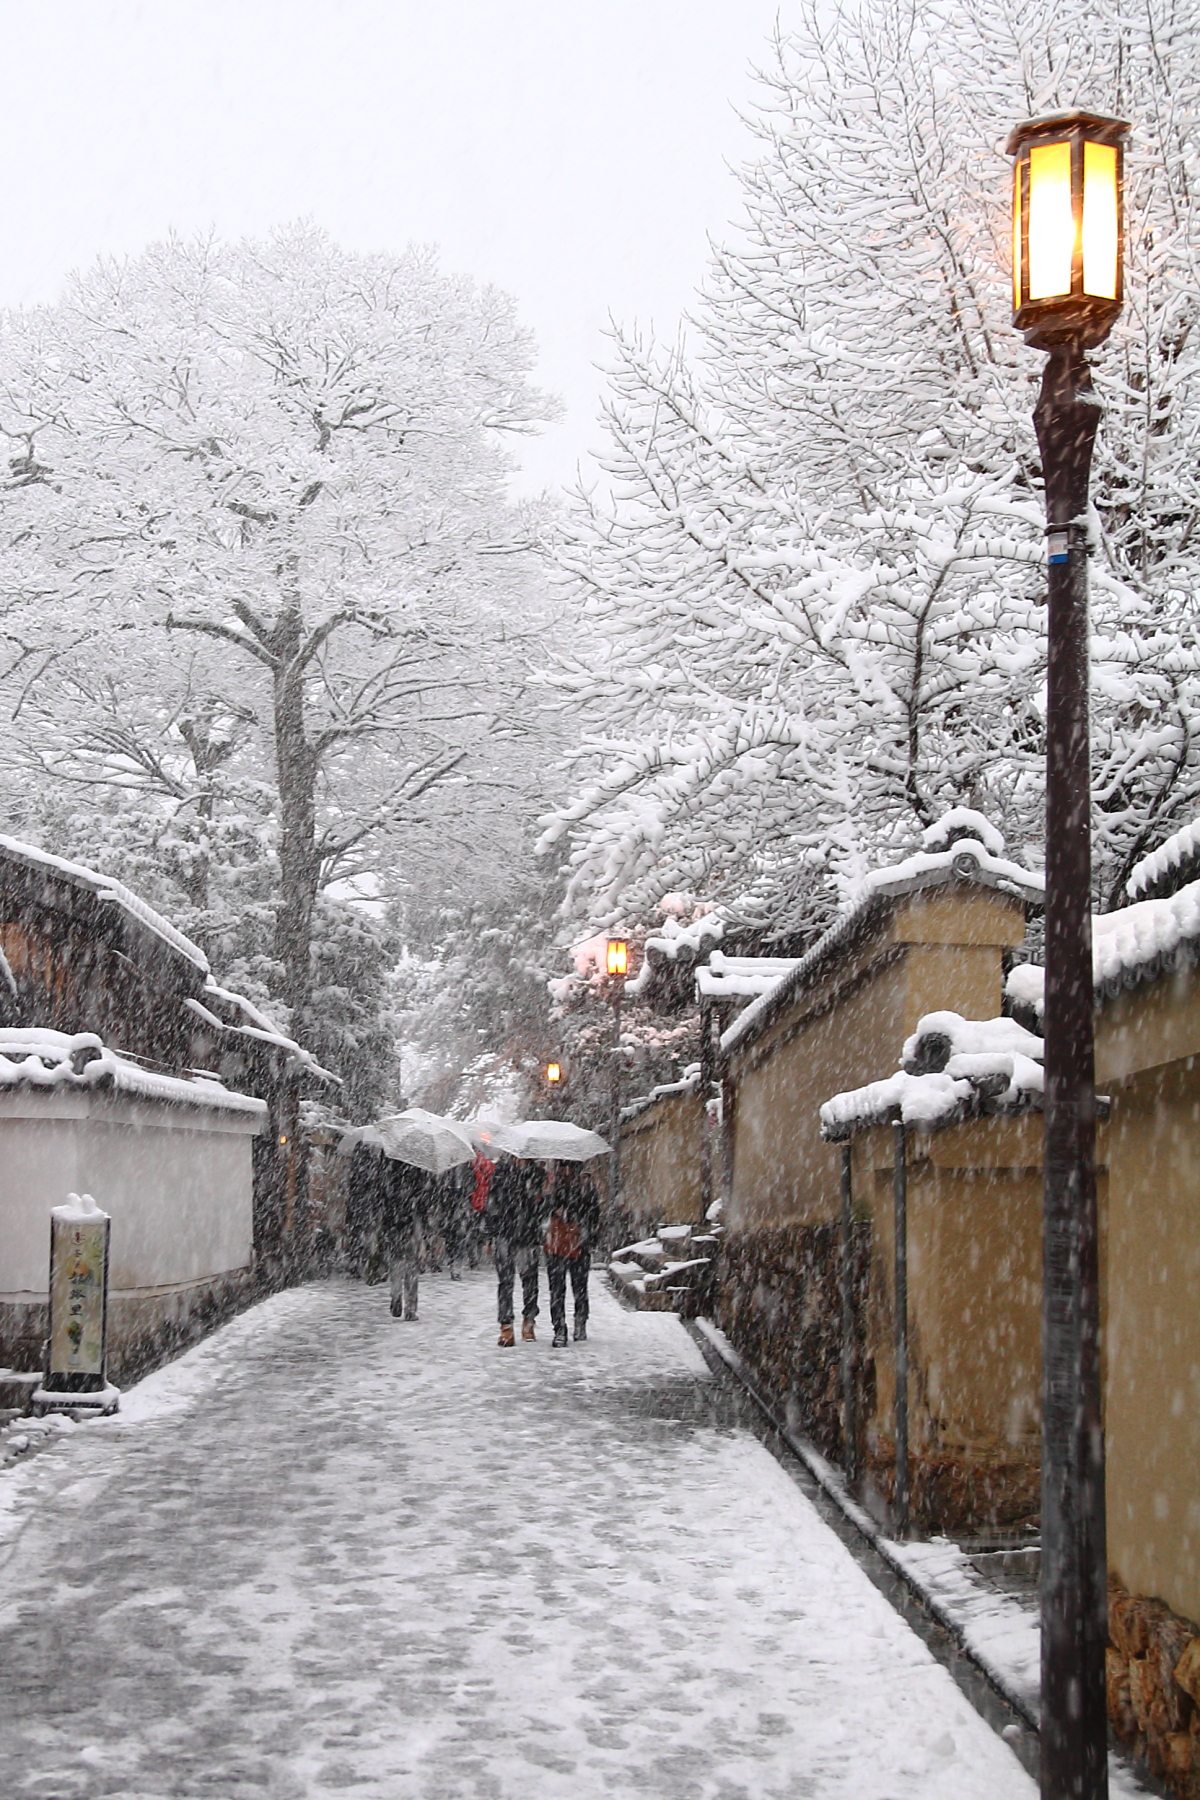 Kyoto in the Snow - The street lights come on...